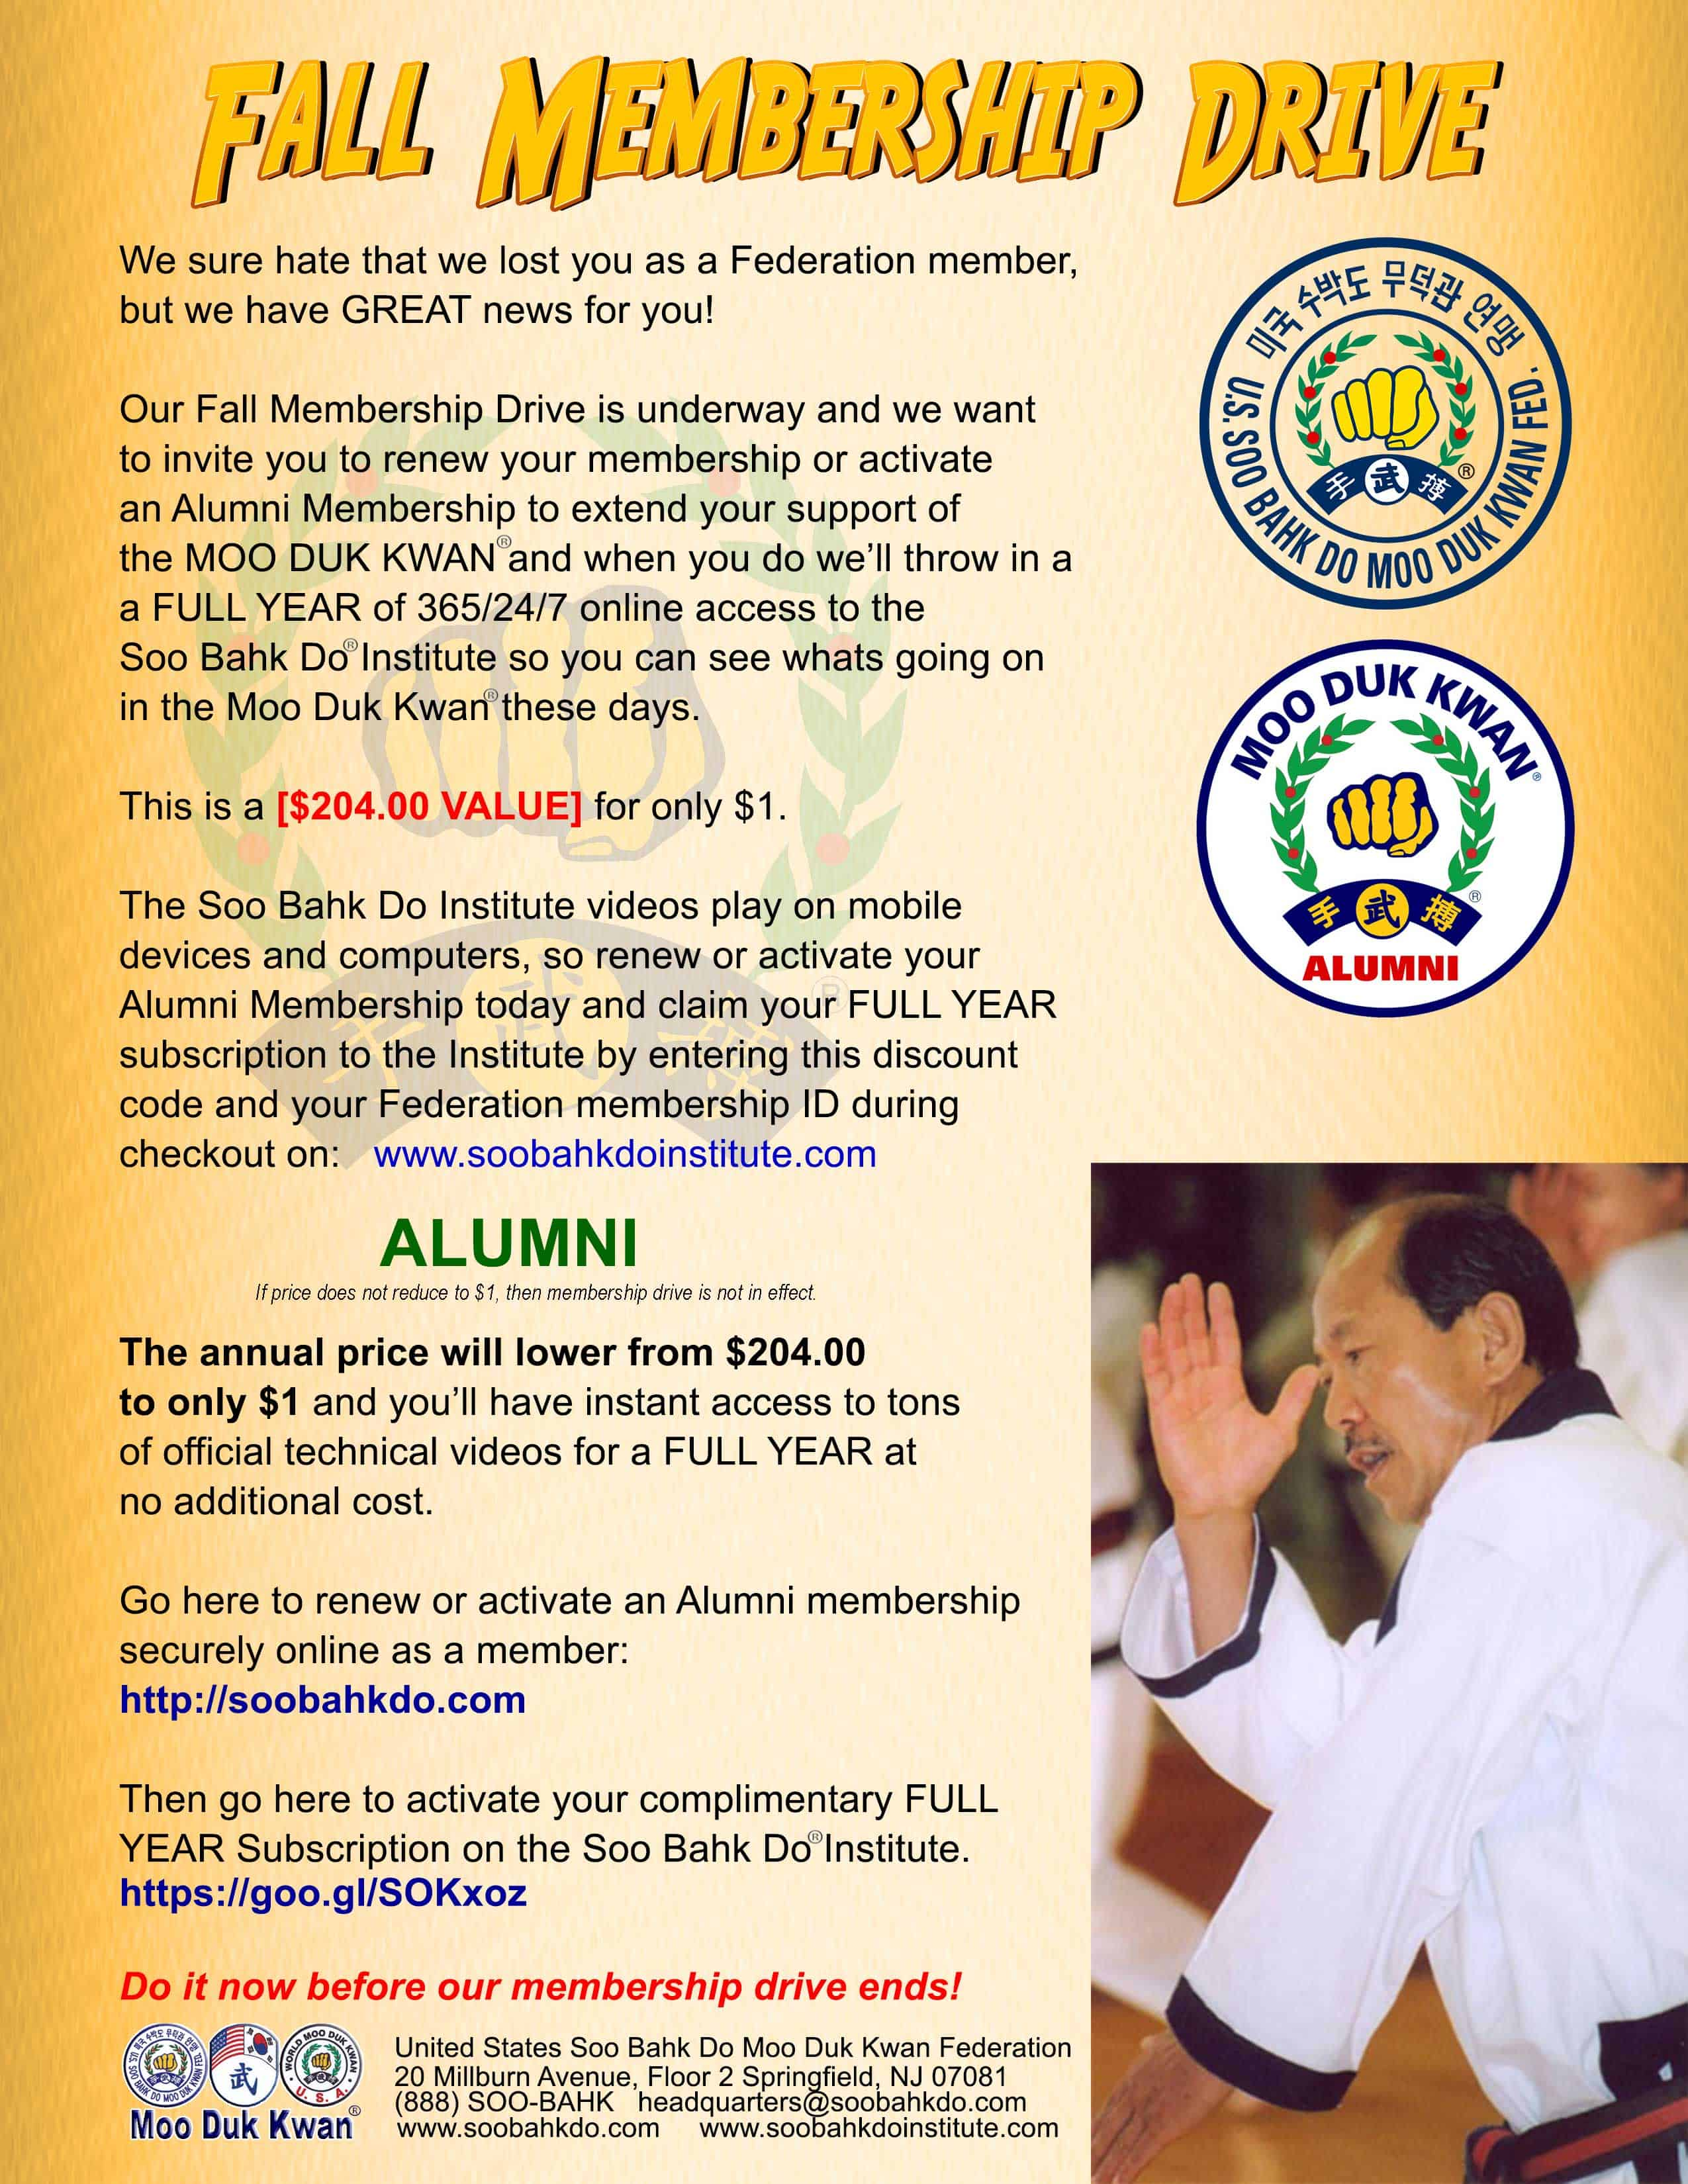 Membership-Drive-Expired-And-Alumni-v7-med-2550x3300d